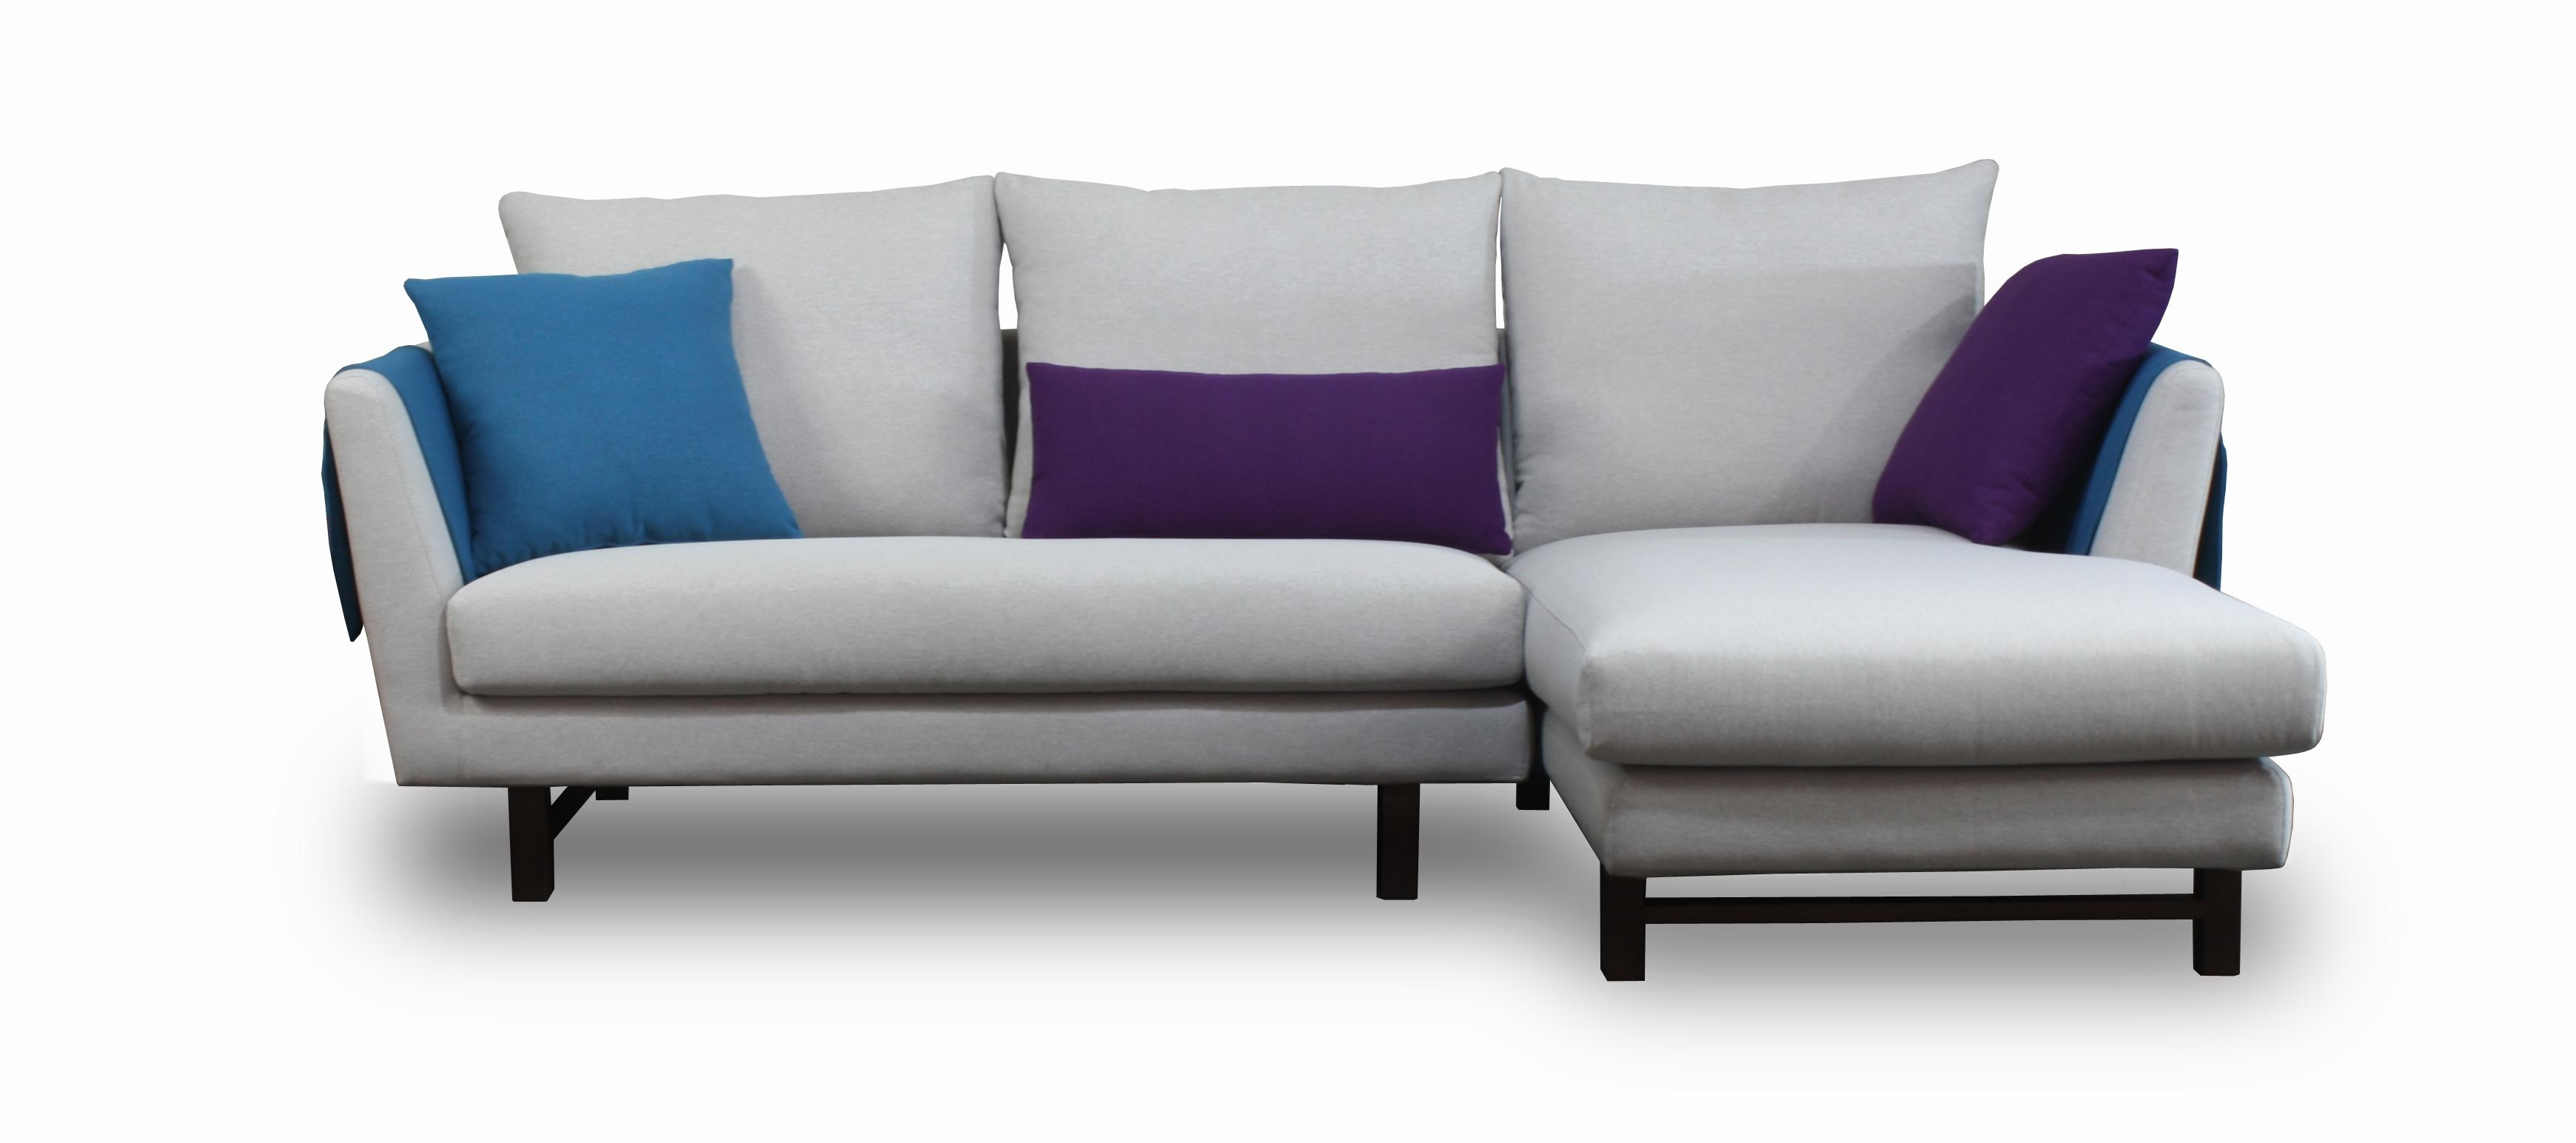 Trend Scandinavian Sofa 64 For Living Room Sofa Inspiration With For Sofa Trend (View 10 of 20)